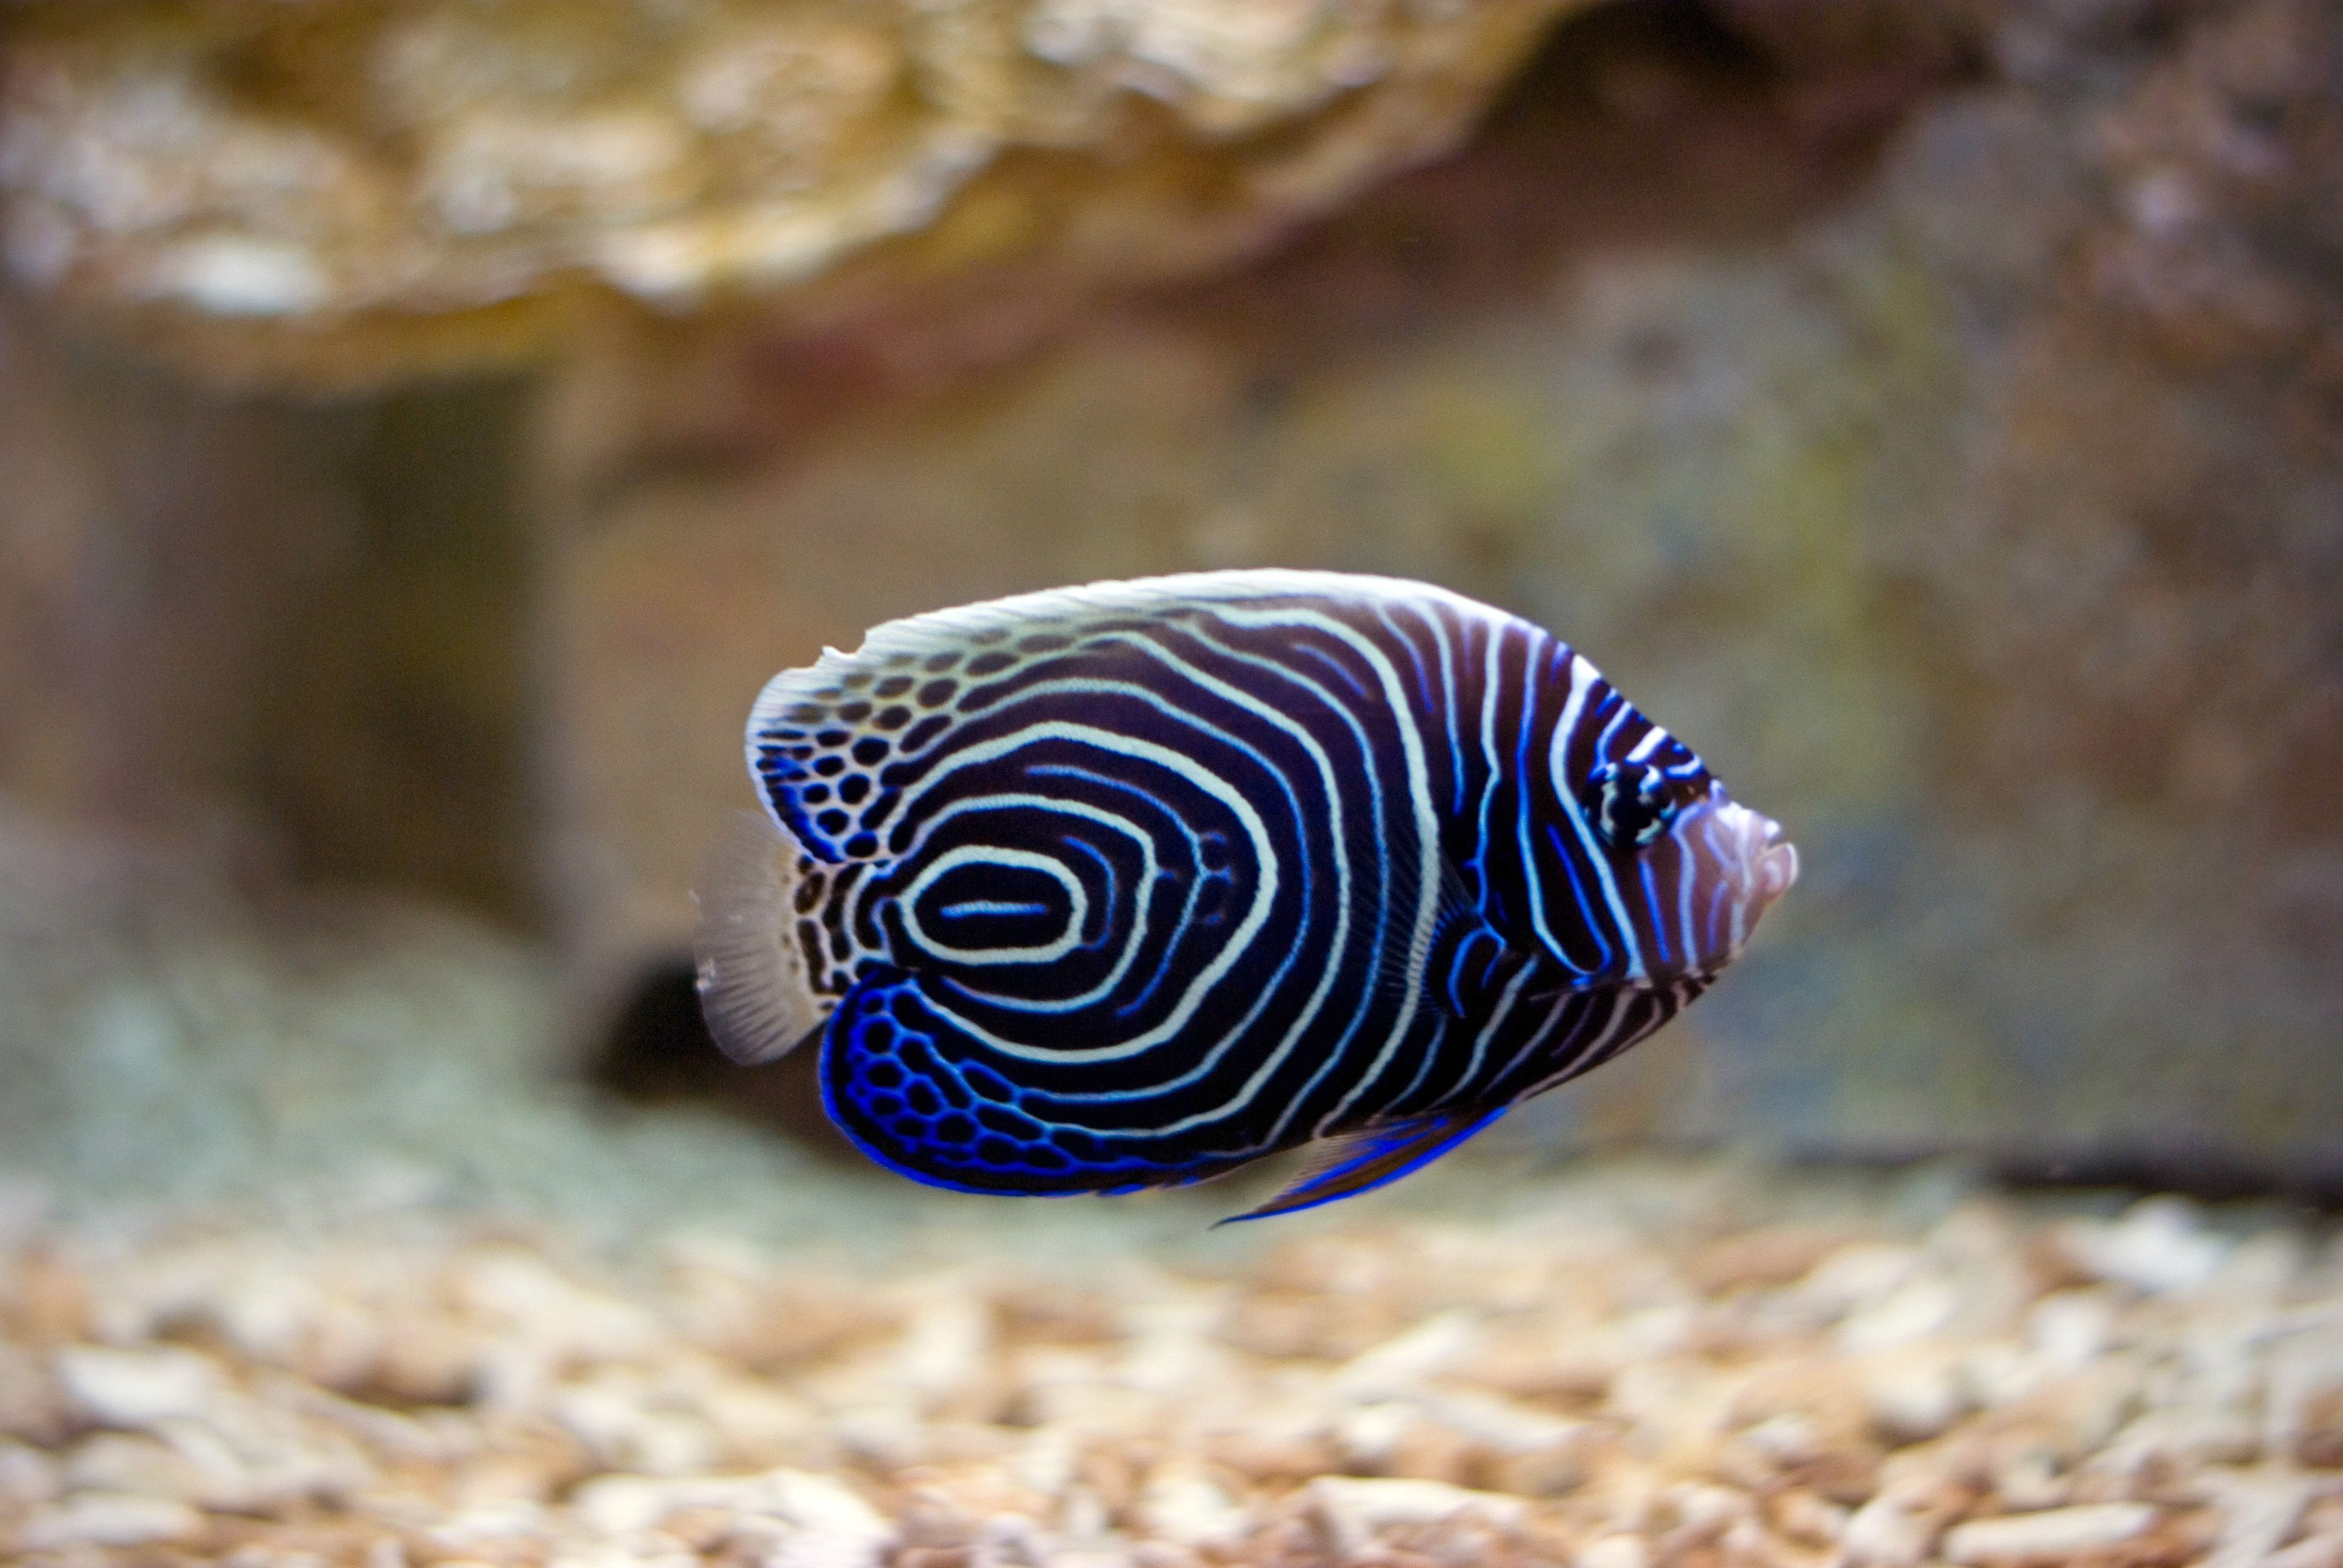 Fish angel fish fish and tropical fish for Tropical aquarium fish